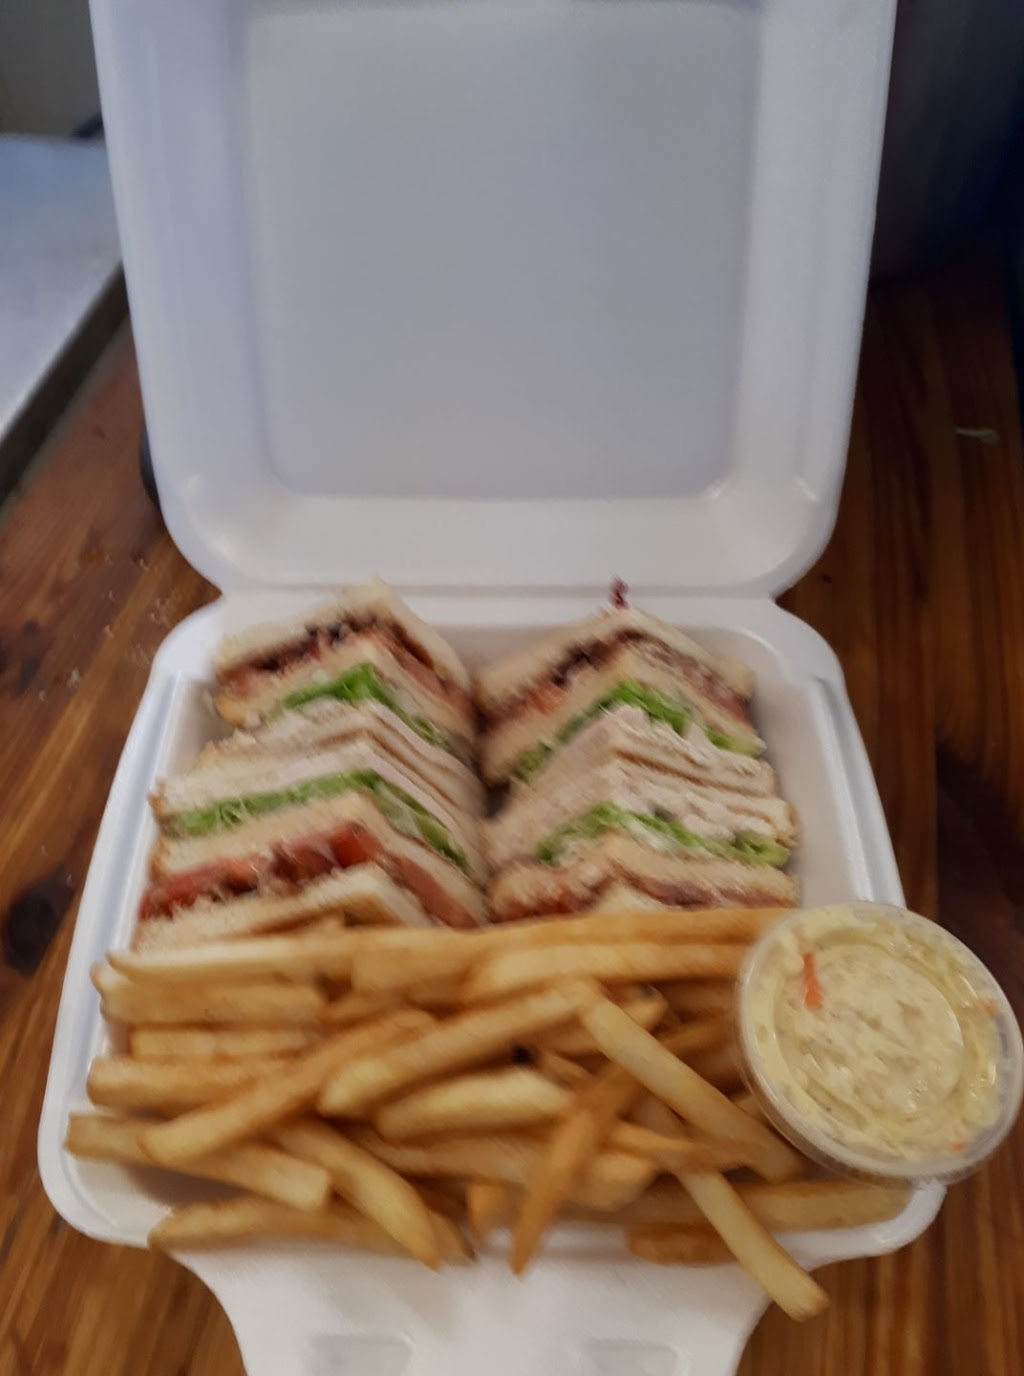 Thornhill Pizza | meal takeaway | 477 Herring Cove Rd, Halifax, NS B3R 1W5, Canada | 9024778888 OR +1 902-477-8888